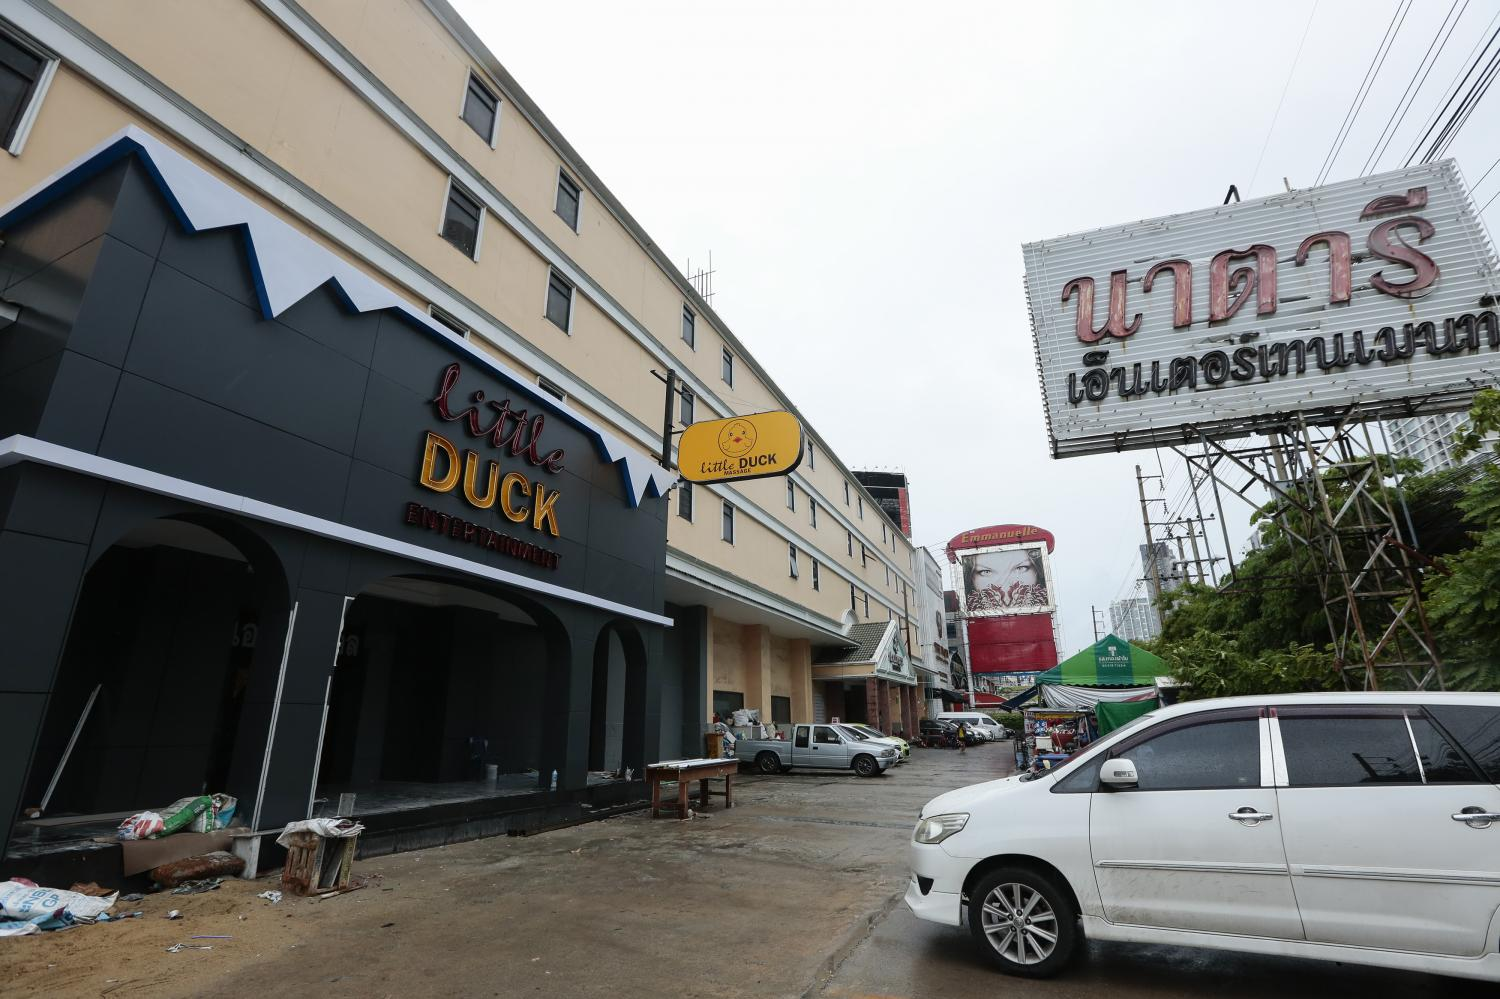 A sign has been put up advertising a new massage parlour called Little Duck at a building which used to be the location of the Nataree Entertainment massage parlour closed down in 2016 in connection with the trafficking of women into the flesh trade. An order is in effect banning use of the building.(Photo by Patipat Janthong)